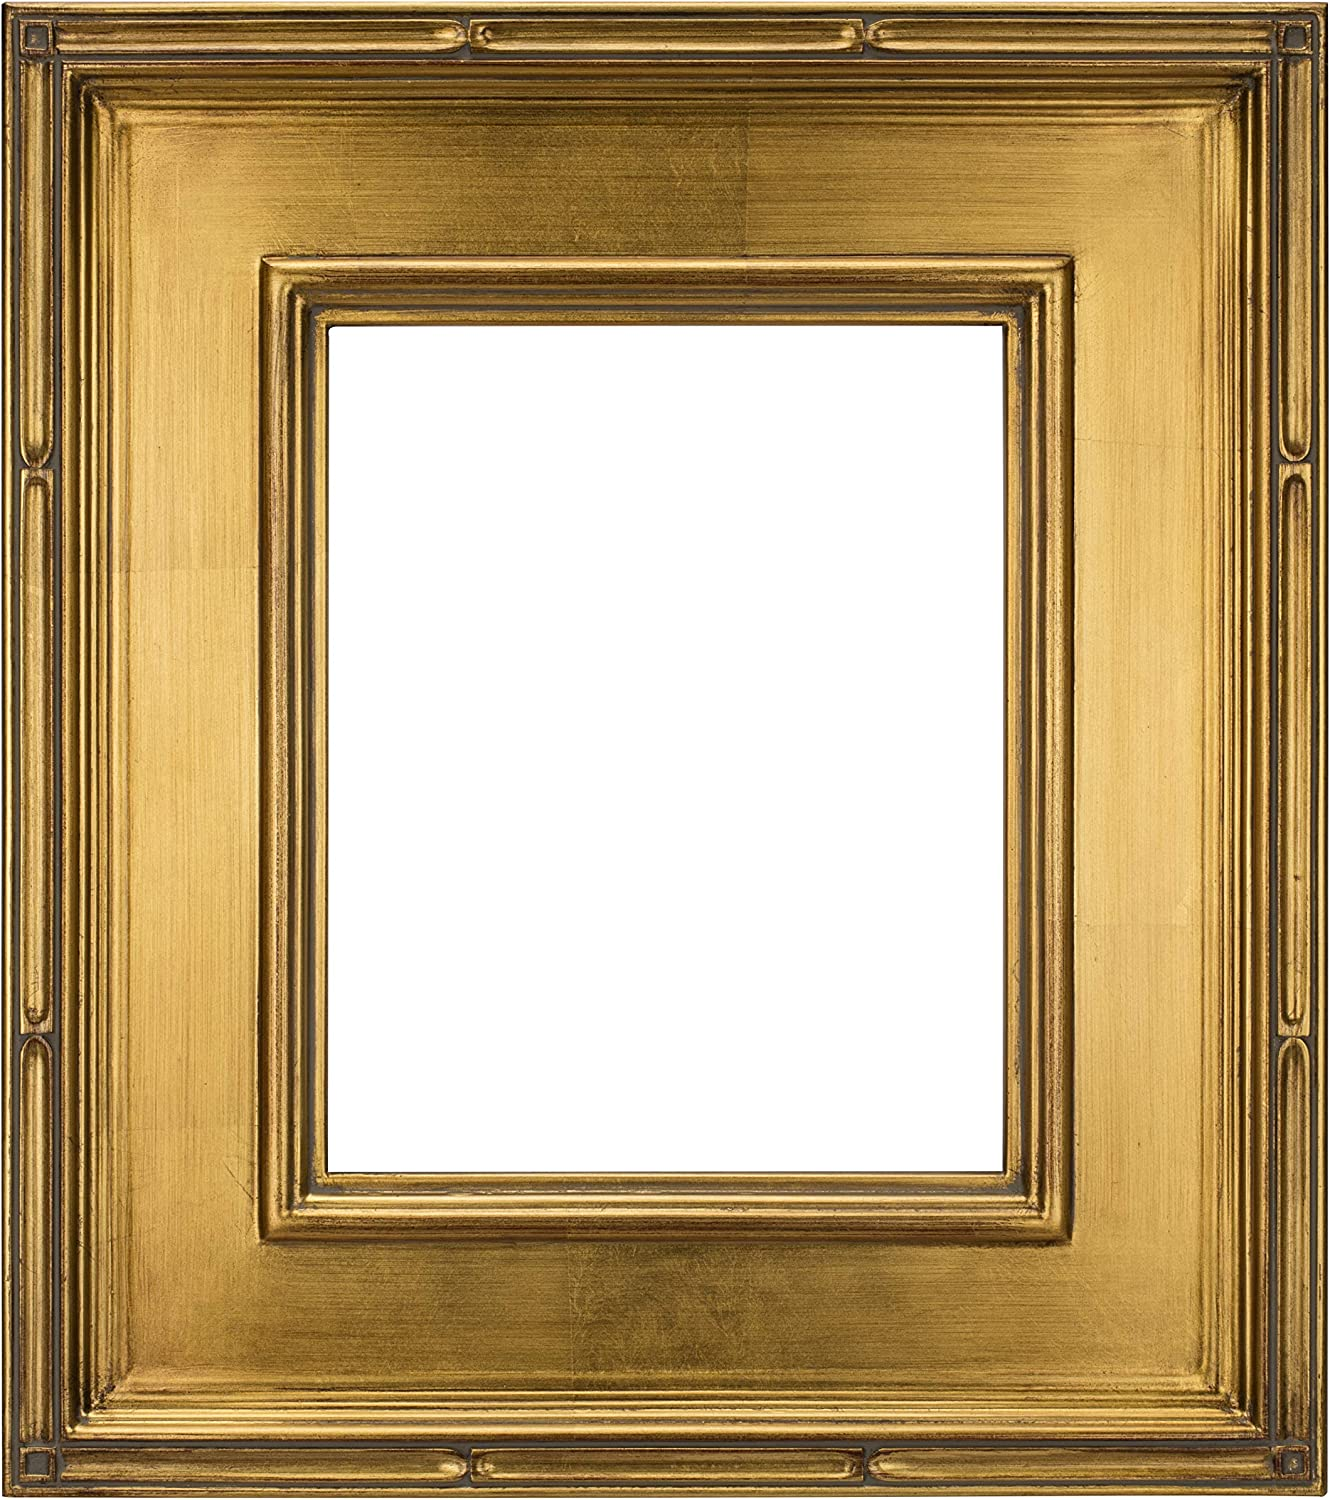 Department store Creative Mark Museum Plein Aire Wooden Art Picture Max 48% OFF Frame